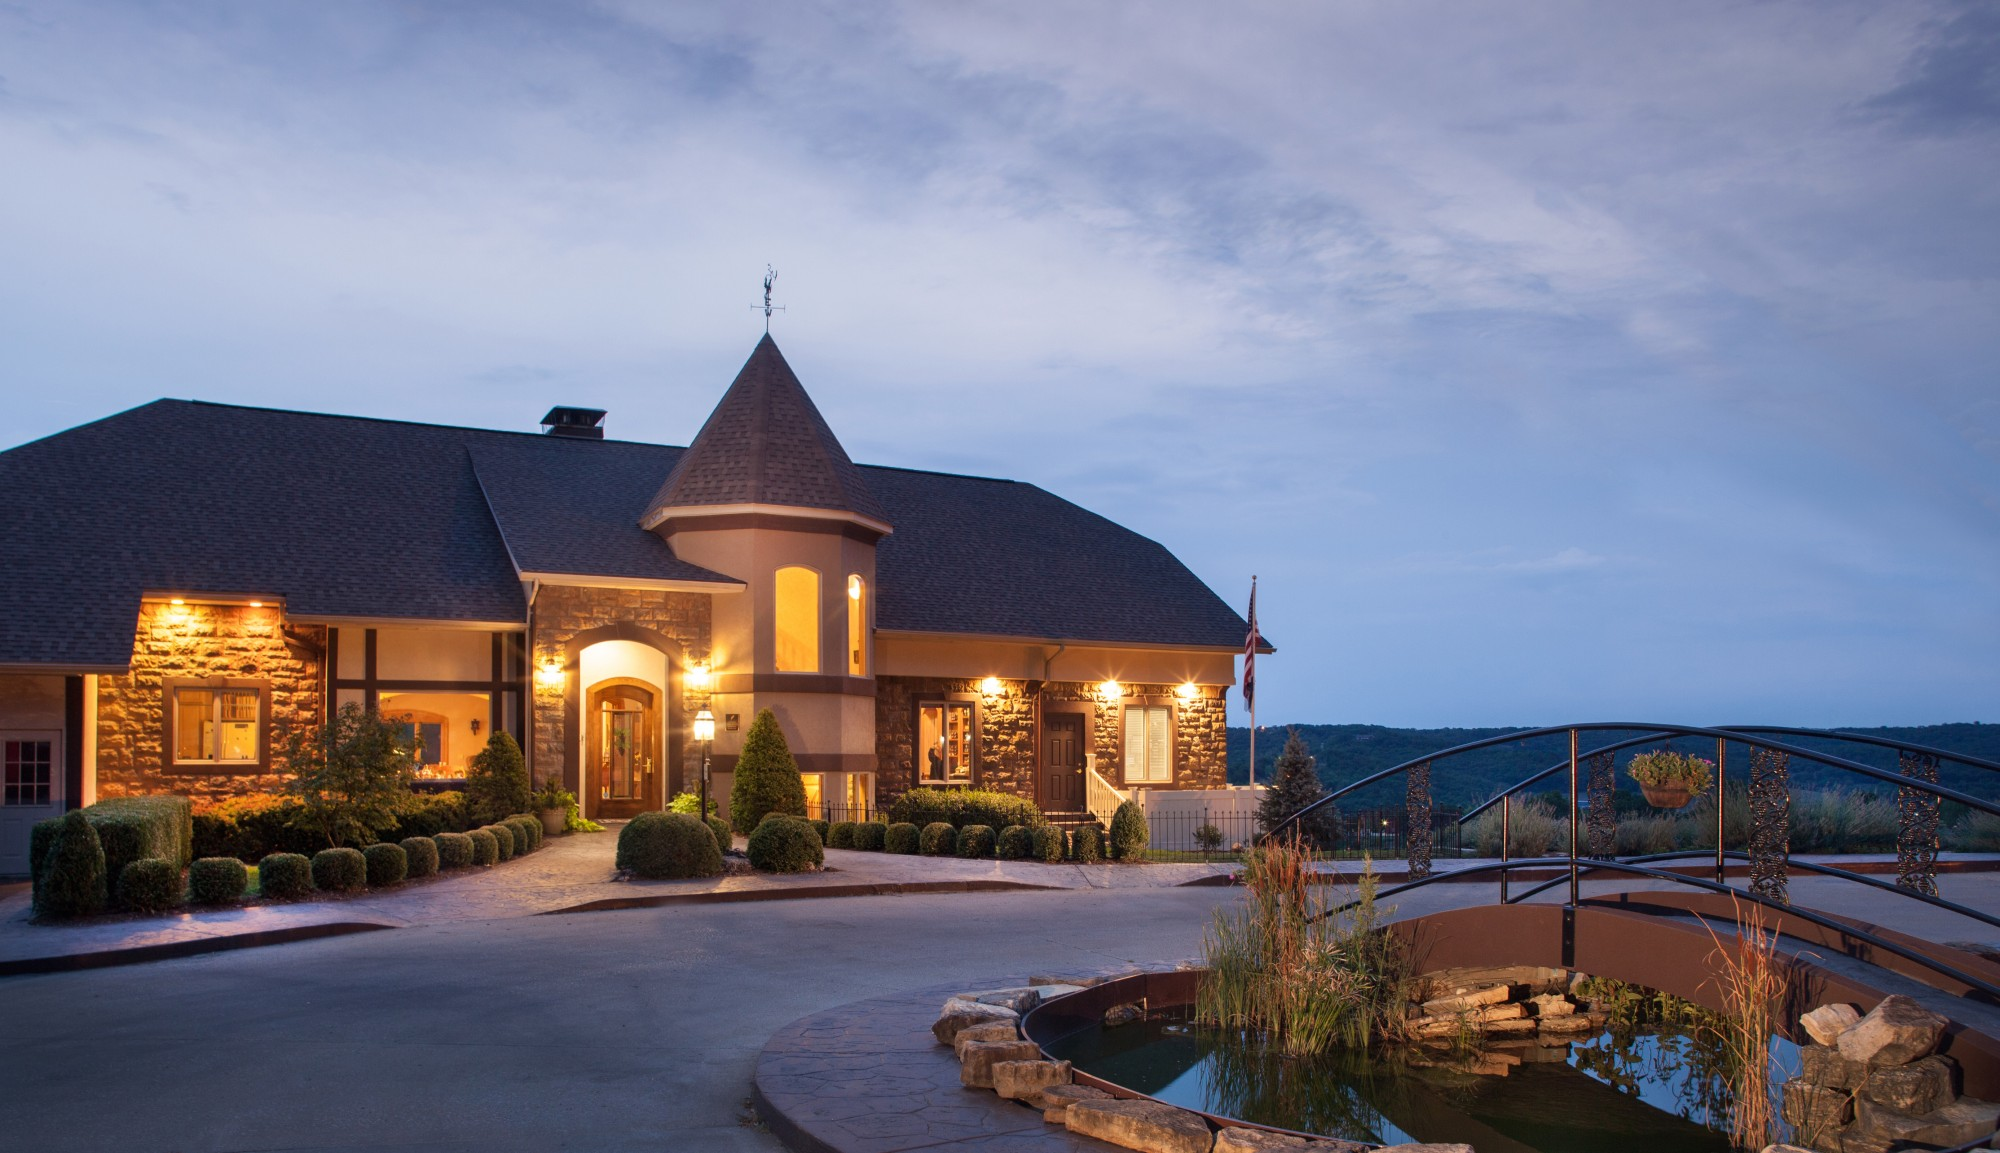 Missouri Bed And Breakfast For Sale Wedding Event Center And Spa